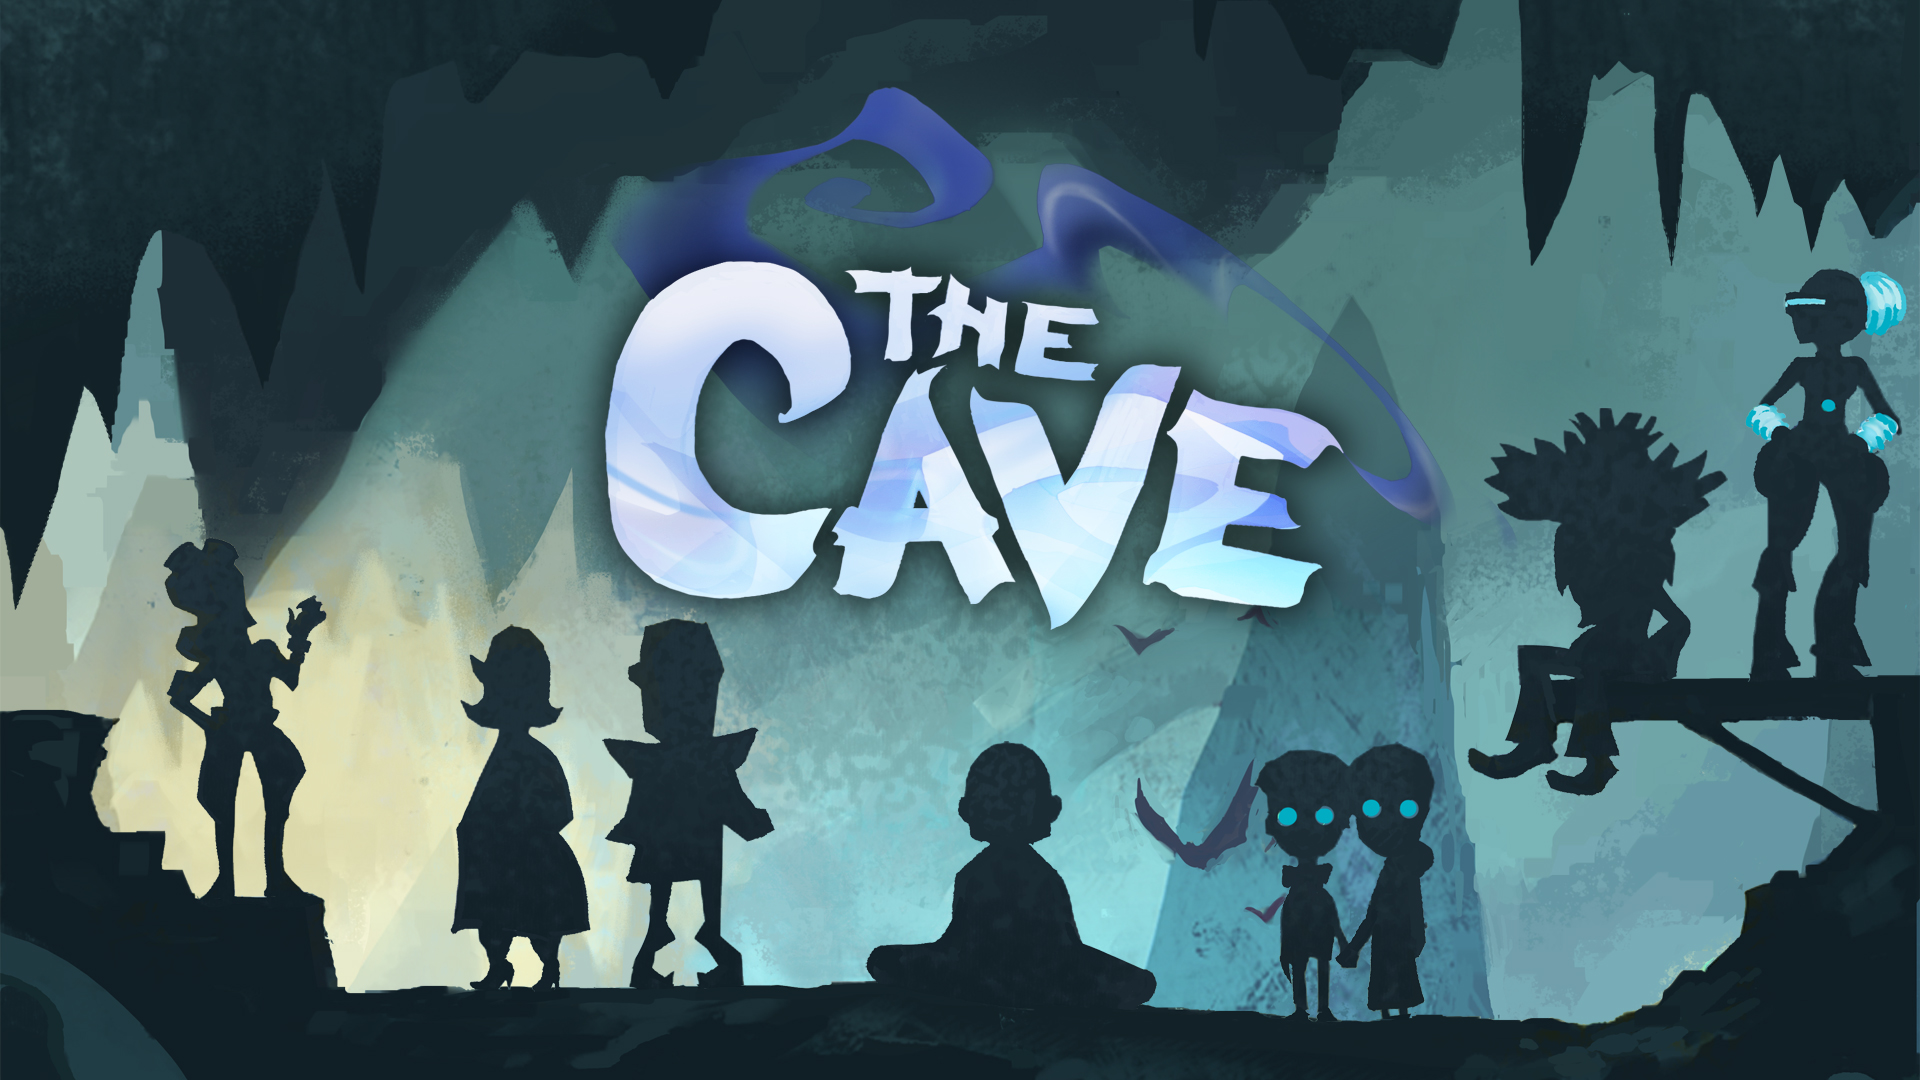 the cave 07022013